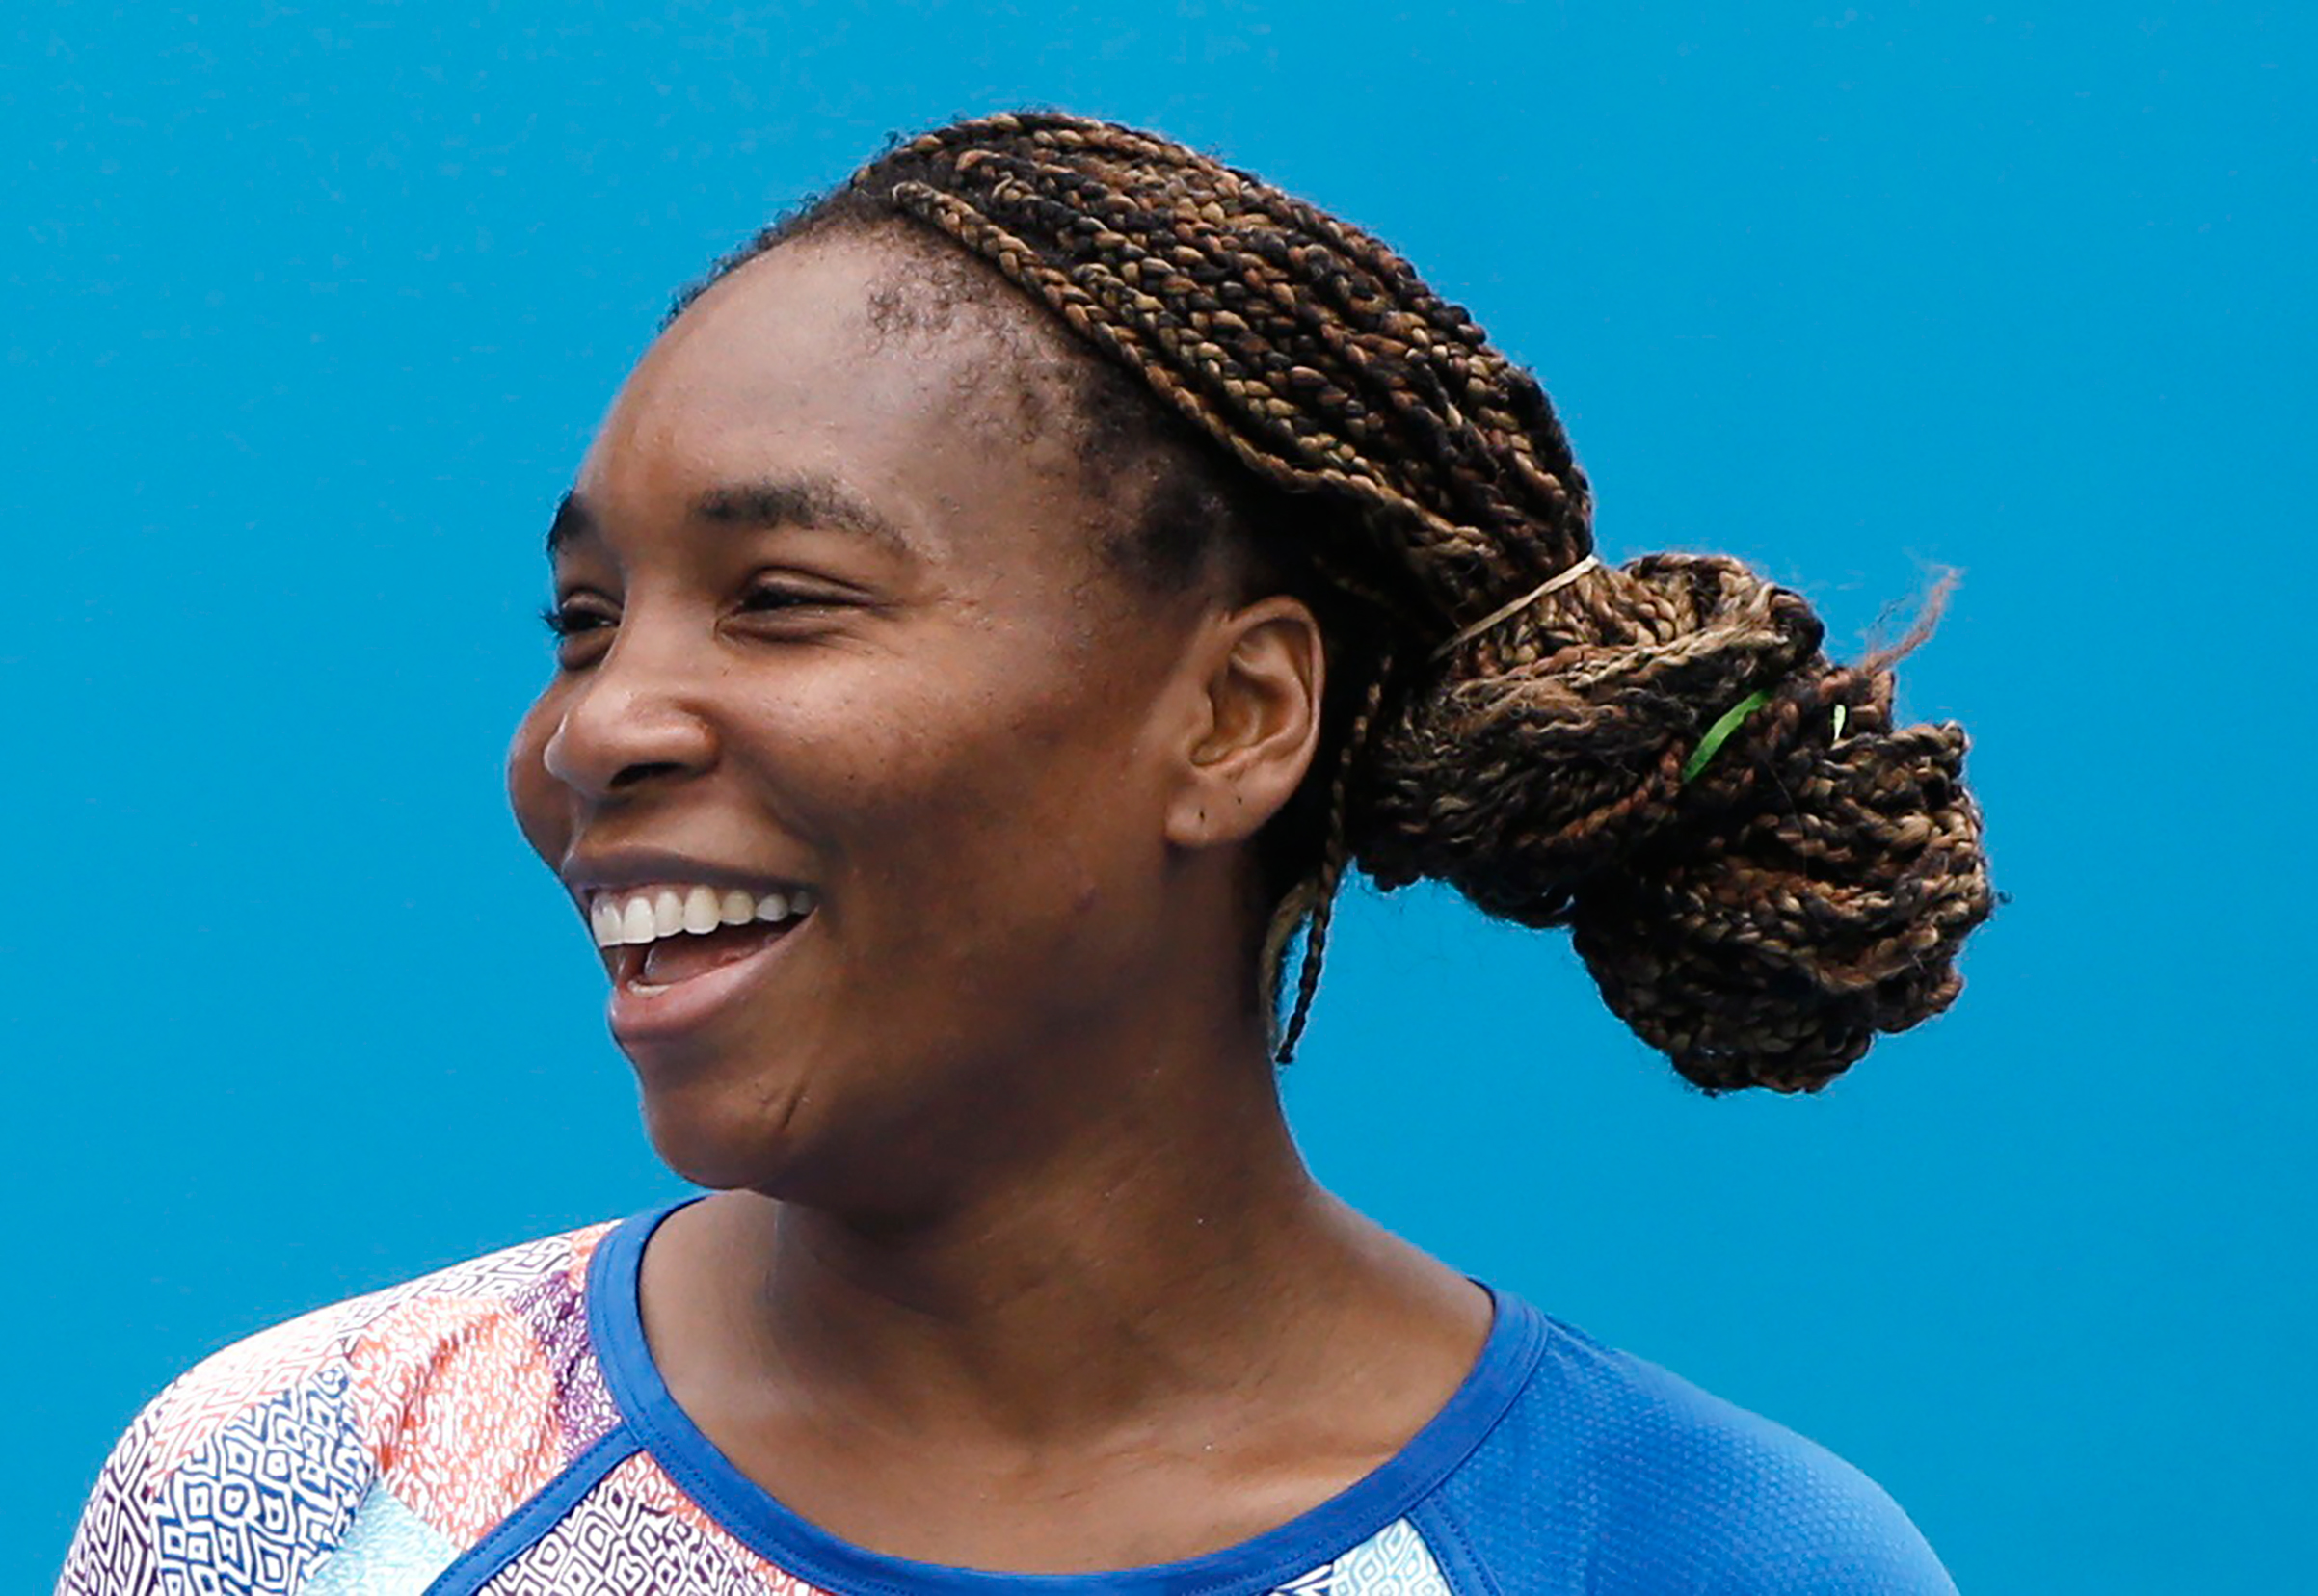 Venus Williams is still in the game on and off the field